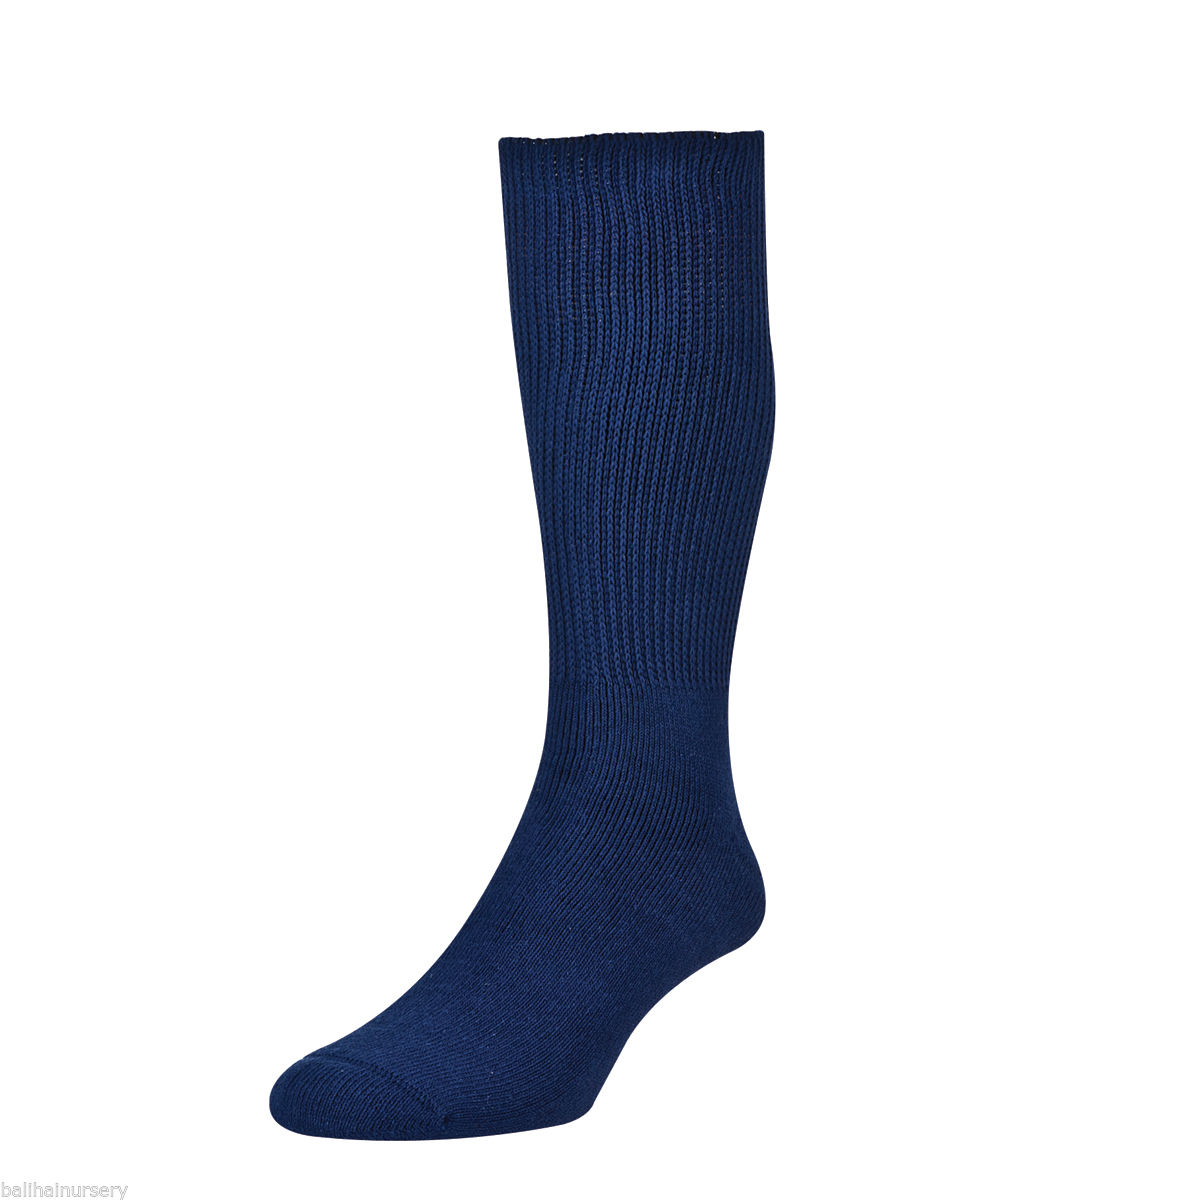 HJ Hall Diabetic Cotton Socks size 6-11 Navy HJ1351